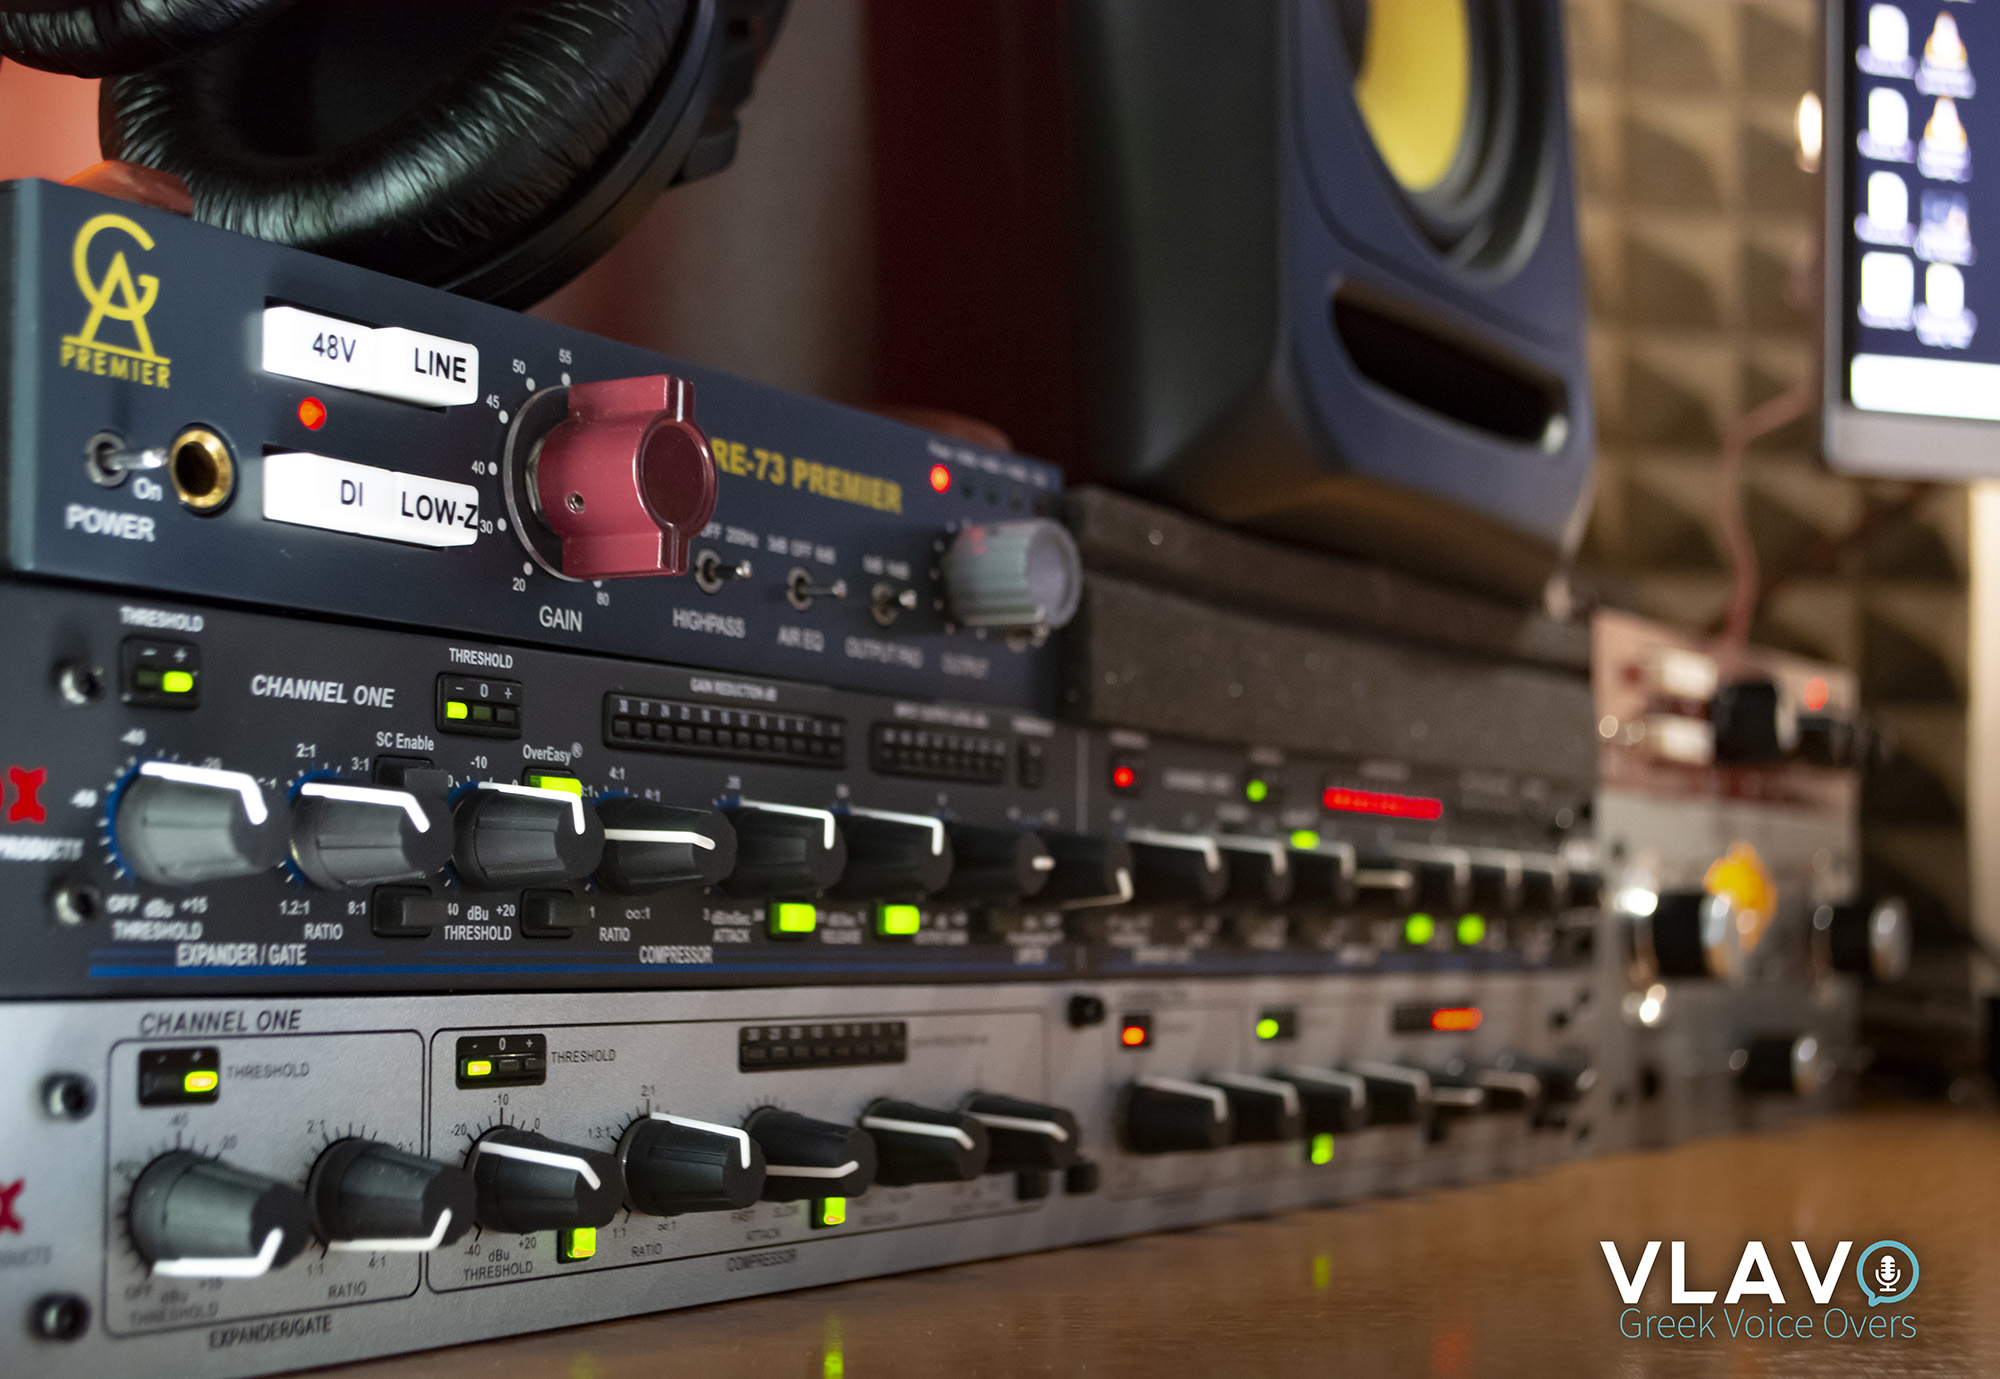 VLAVO-GREEK-VOICE-OVERS-PREAMPS-1-web